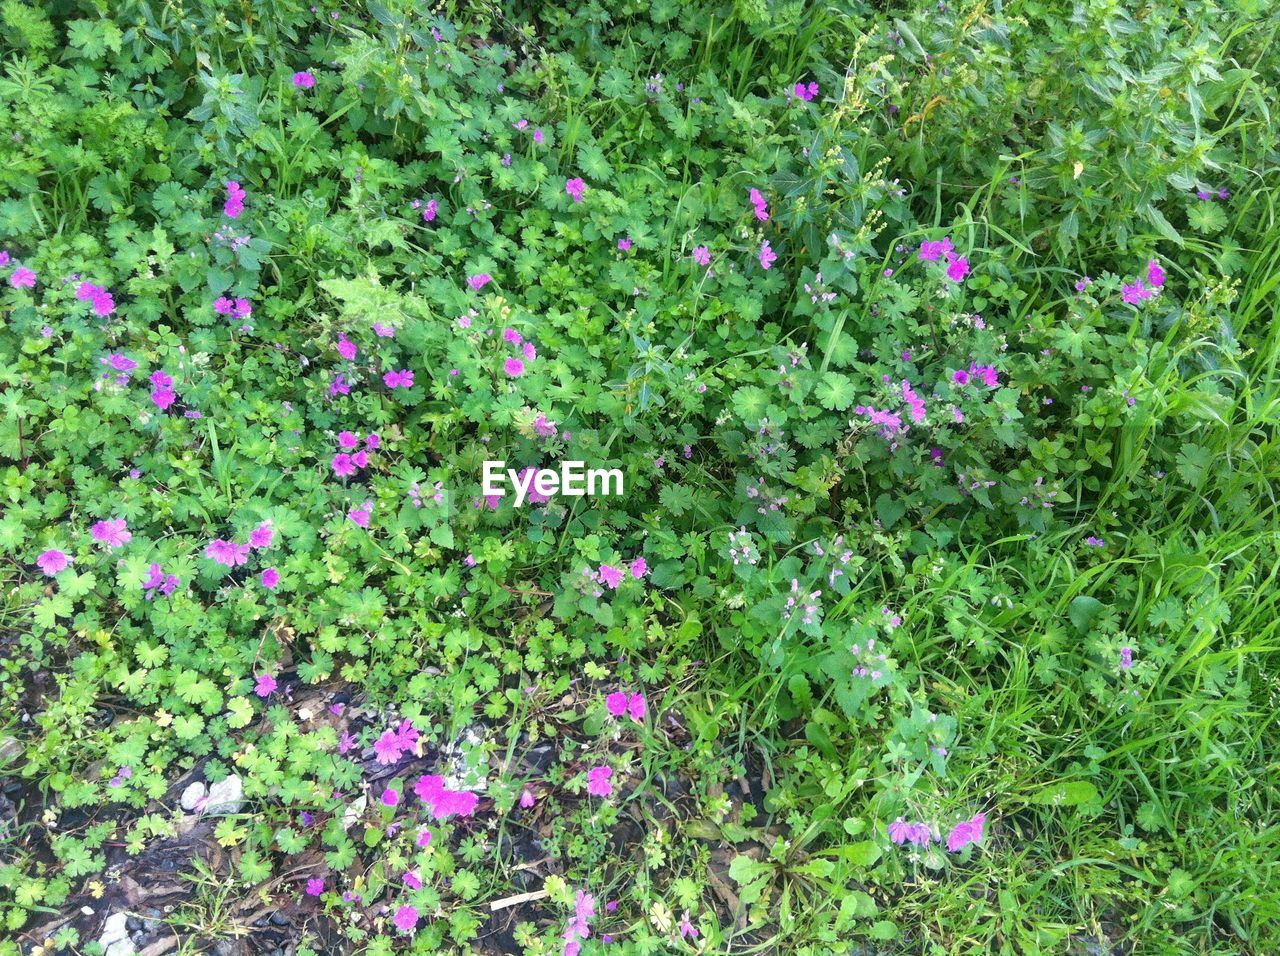 flower, green color, growth, plant, nature, fragility, beauty in nature, freshness, pink color, leaf, abundance, no people, day, outdoors, flowerbed, springtime, multi colored, blooming, grass, flower head, petunia, close-up